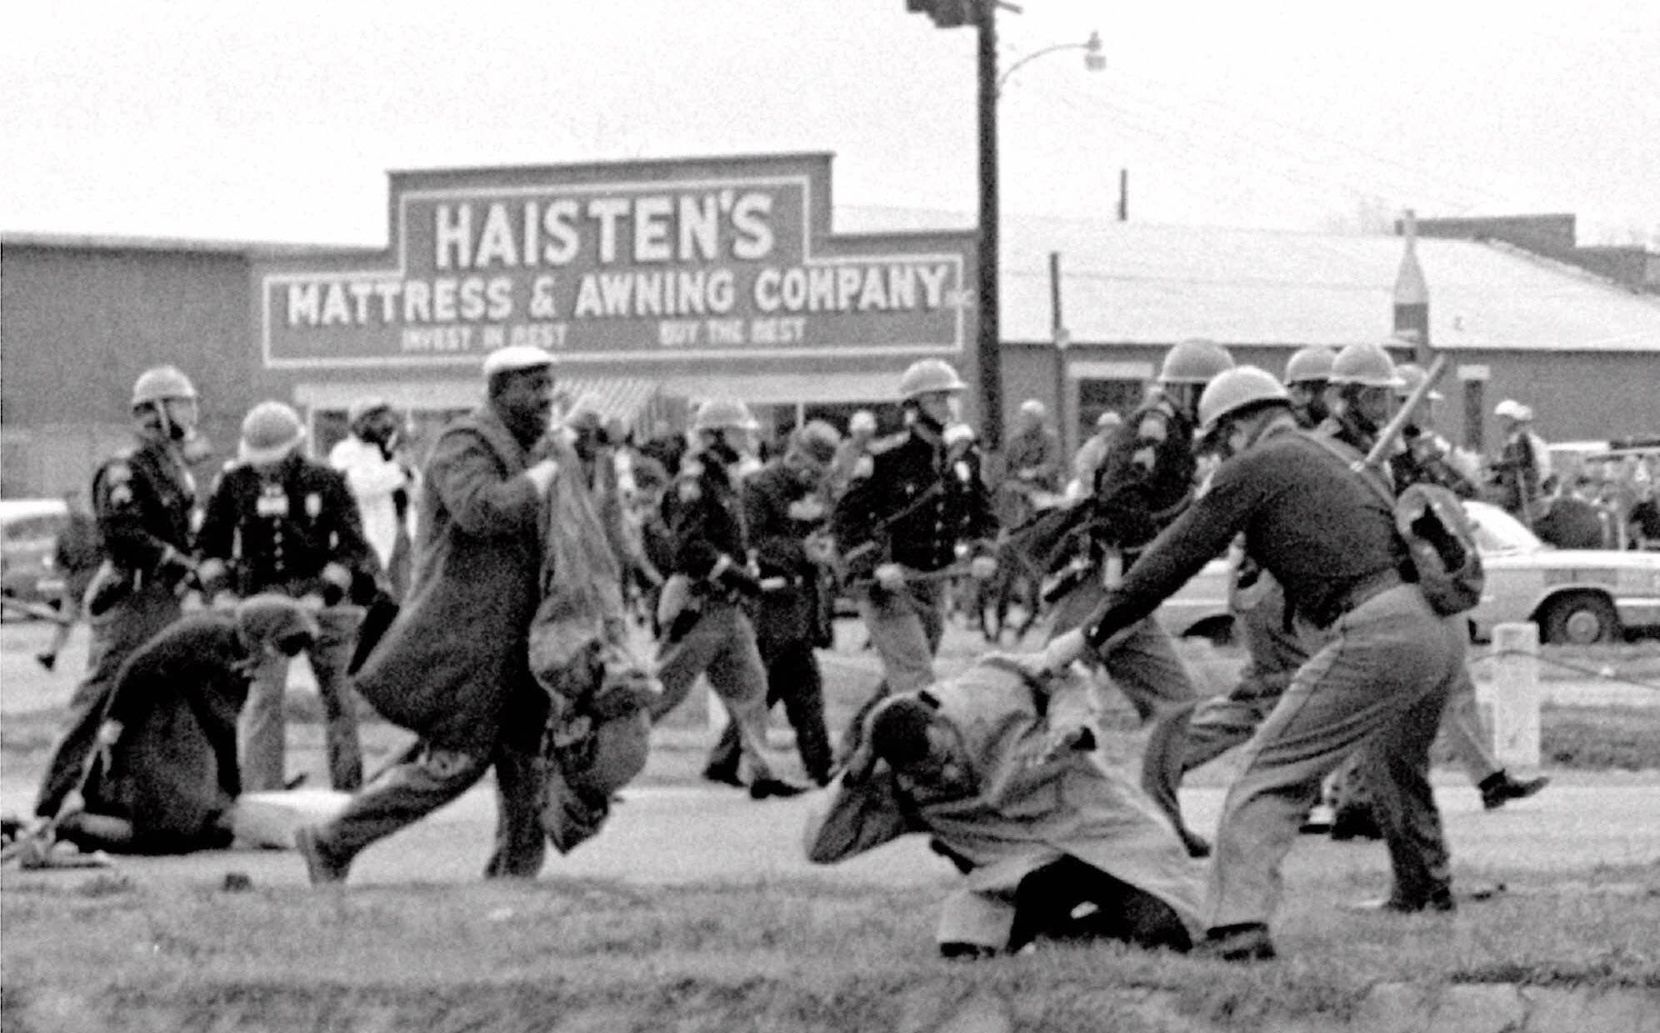 Alabama state troopers swing nightsticks to break up a civil rights voting march in Selma, Ala., on March 7, 1965. John Lewis, front right, of the Student Non-violent Coordinating Committee is put on the ground by a trooper.